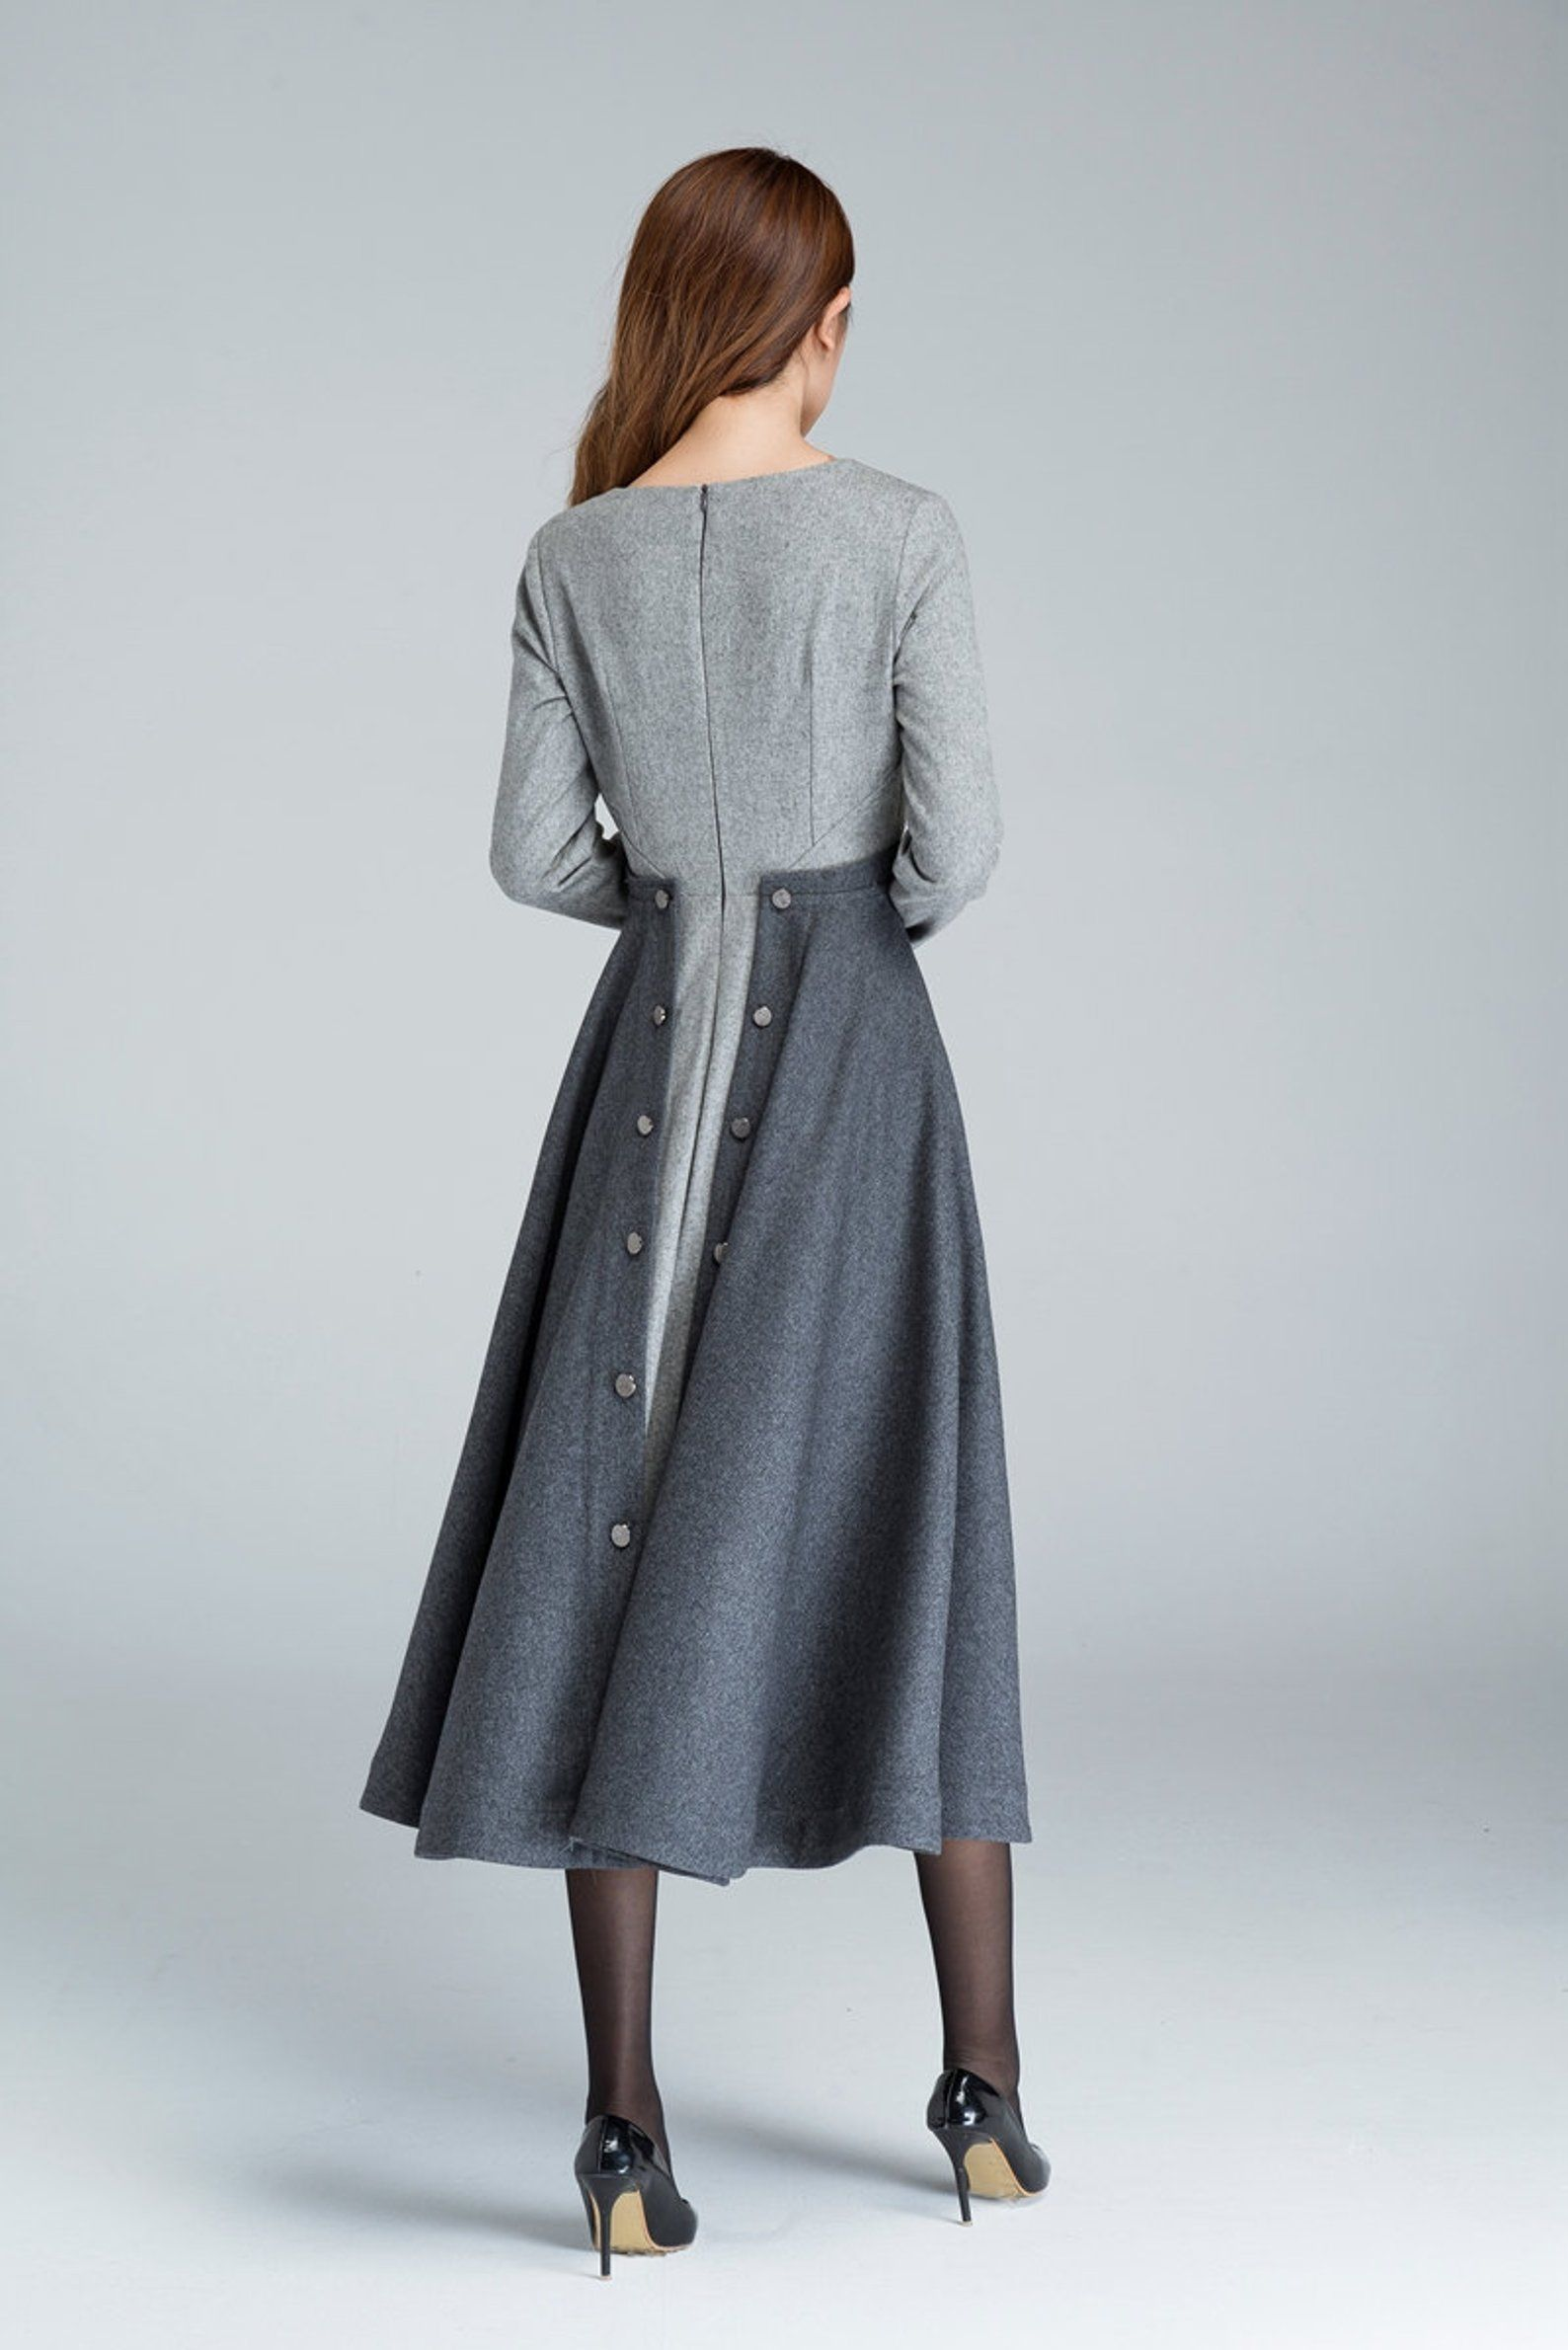 13s Grey Fit and Flare wool dress, womens dresses, Winter dress